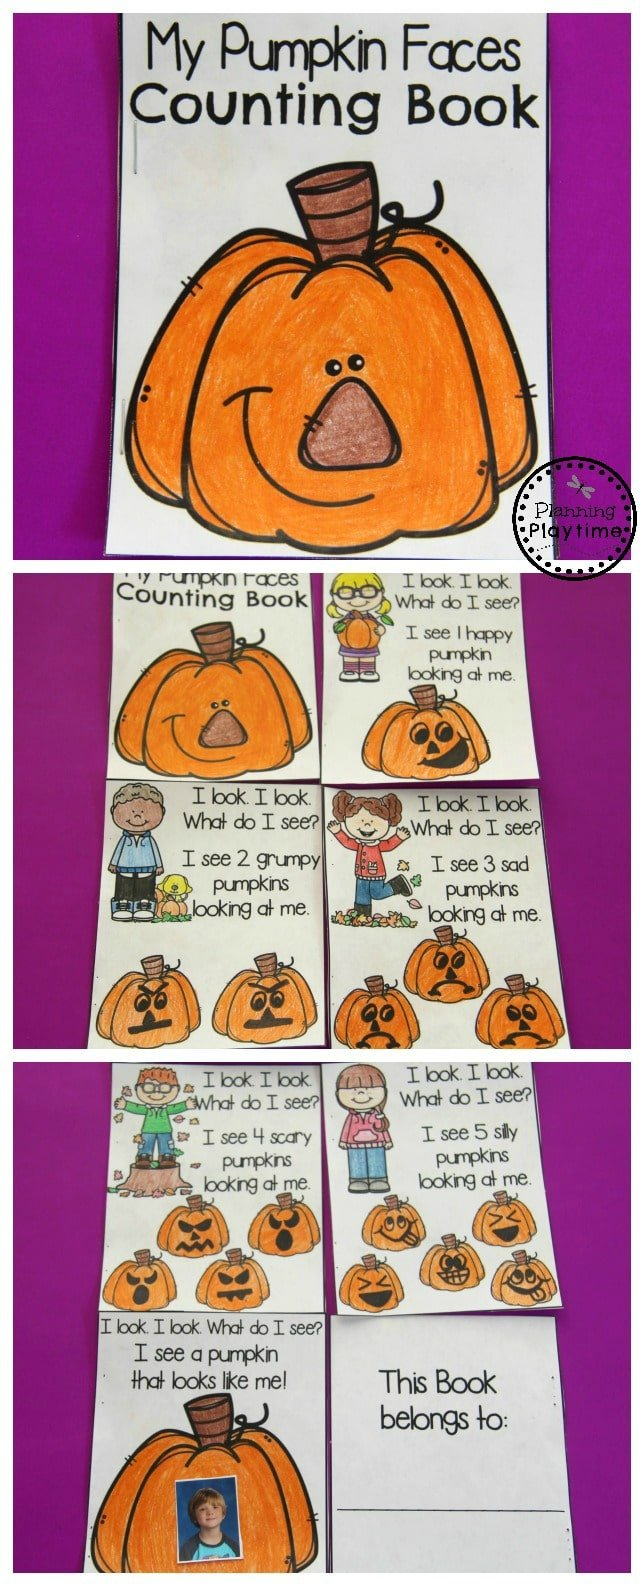 Pumpkin Preschool Activities - My Pumpkin Faces Counting Book.